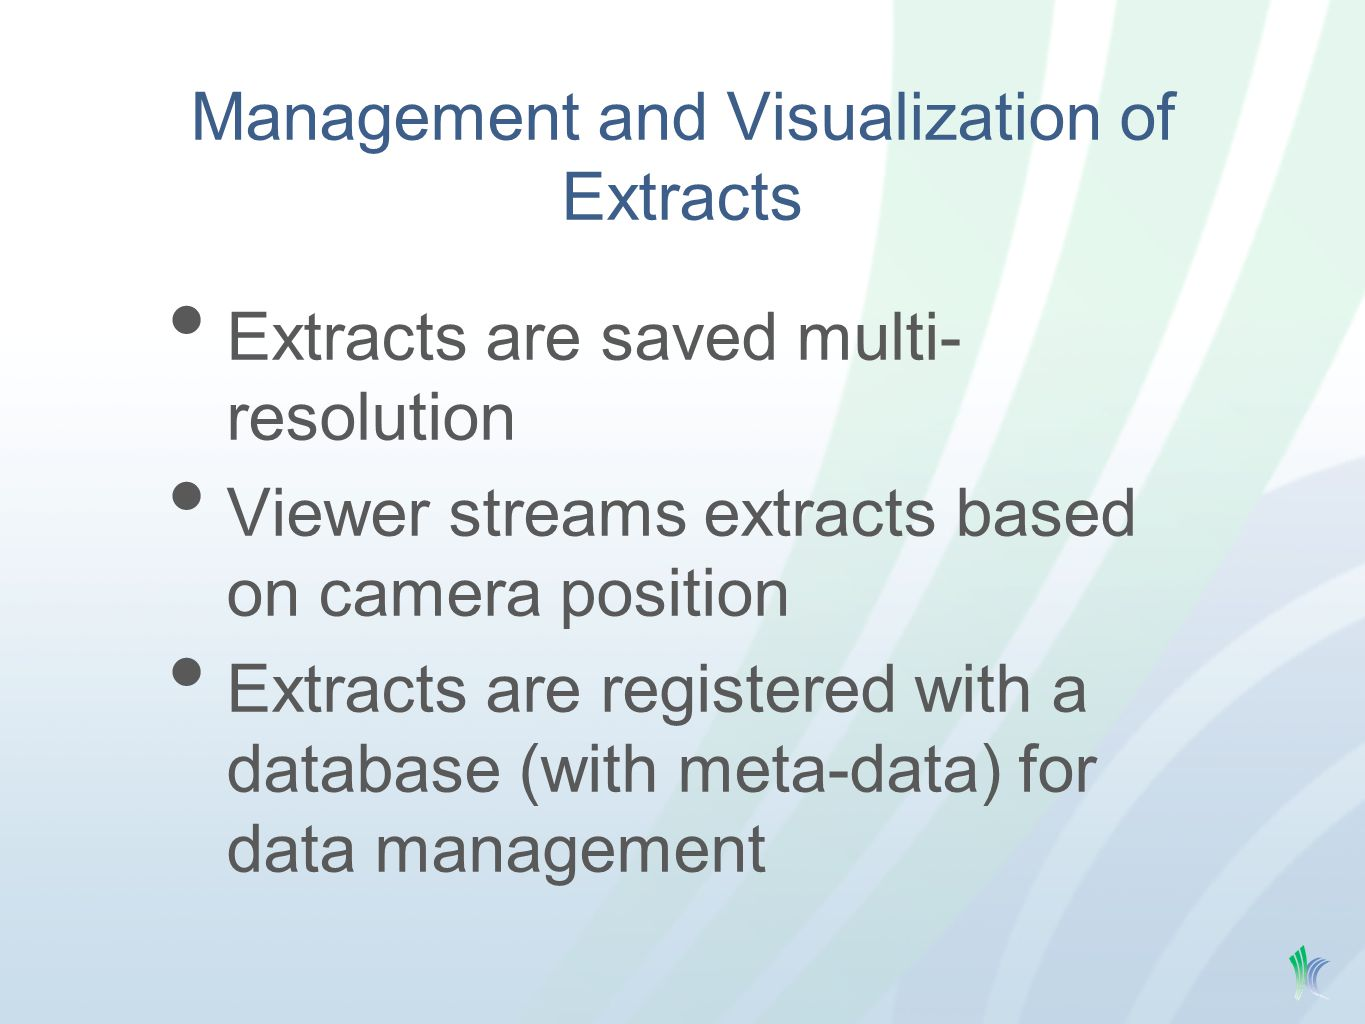 Management and Visualization of Extracts Extracts are saved multi- resolution Viewer streams extracts based on camera position Extracts are registered with a database (with meta-data) for data management